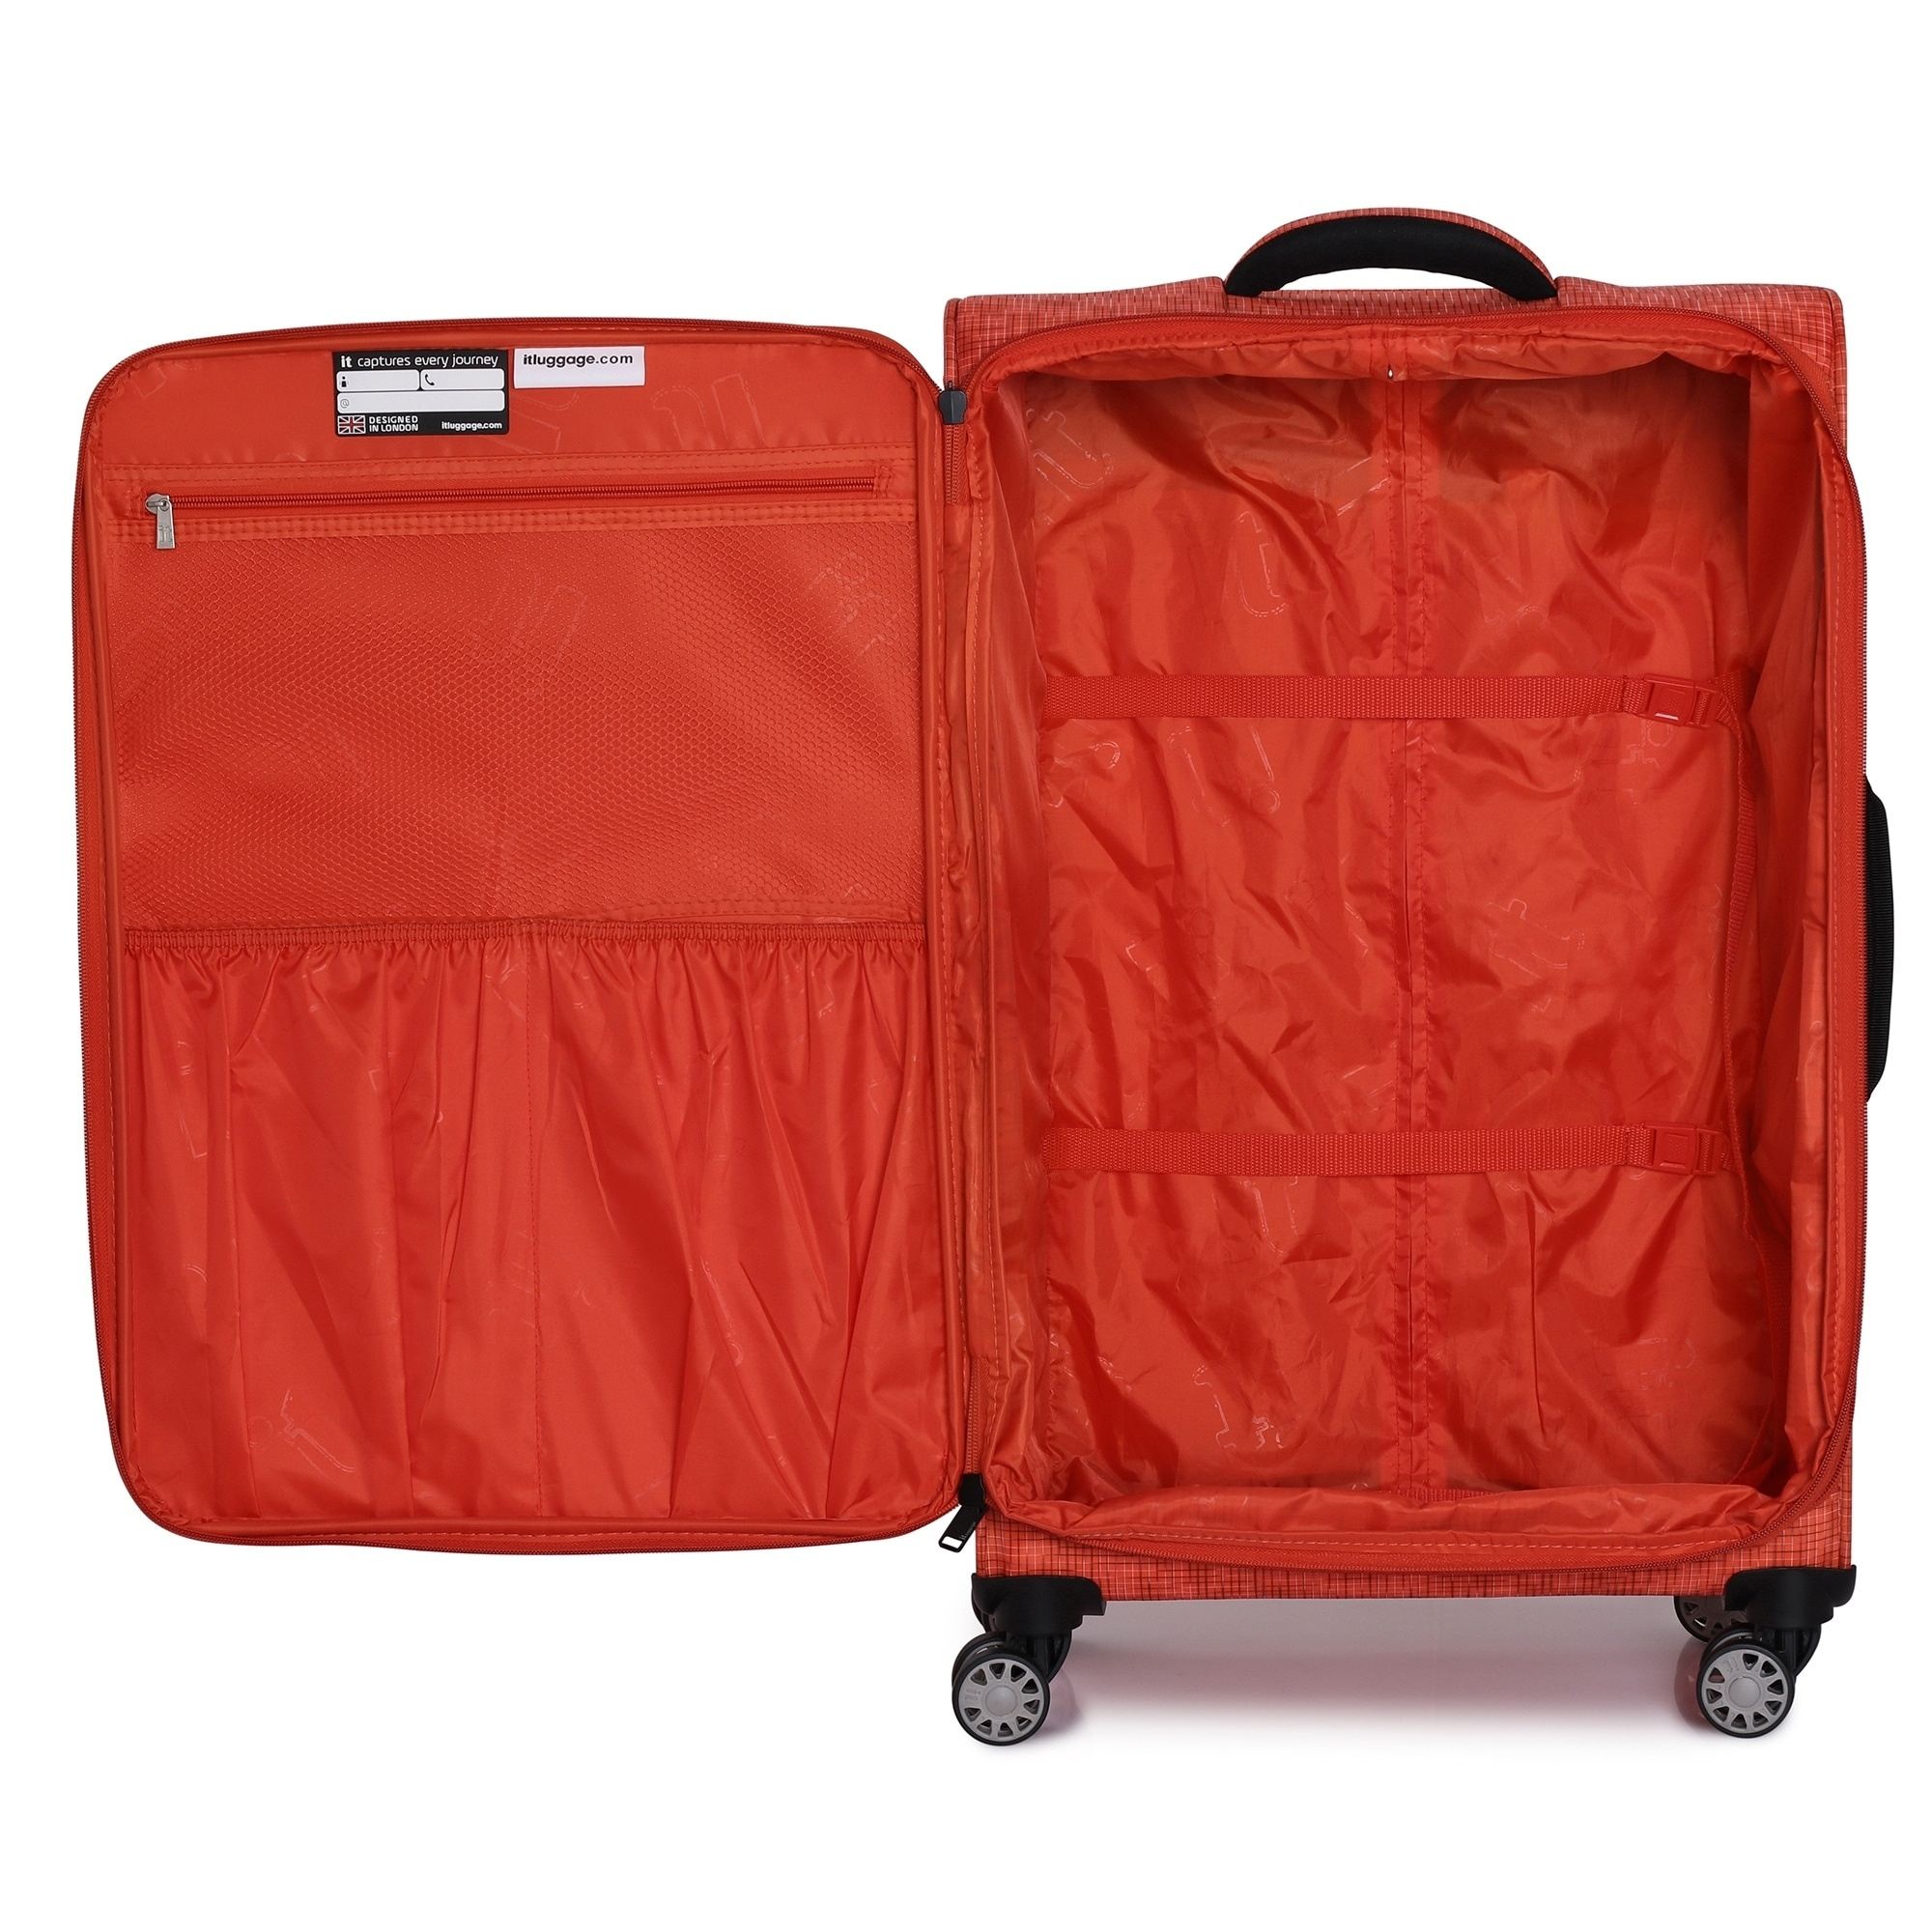 Shop it luggage Stitched Squares 30.5-inch Lightweight Expandable Spinner Suitcase - On Sale - Free Shipping Today - Overstock.com - 23444391